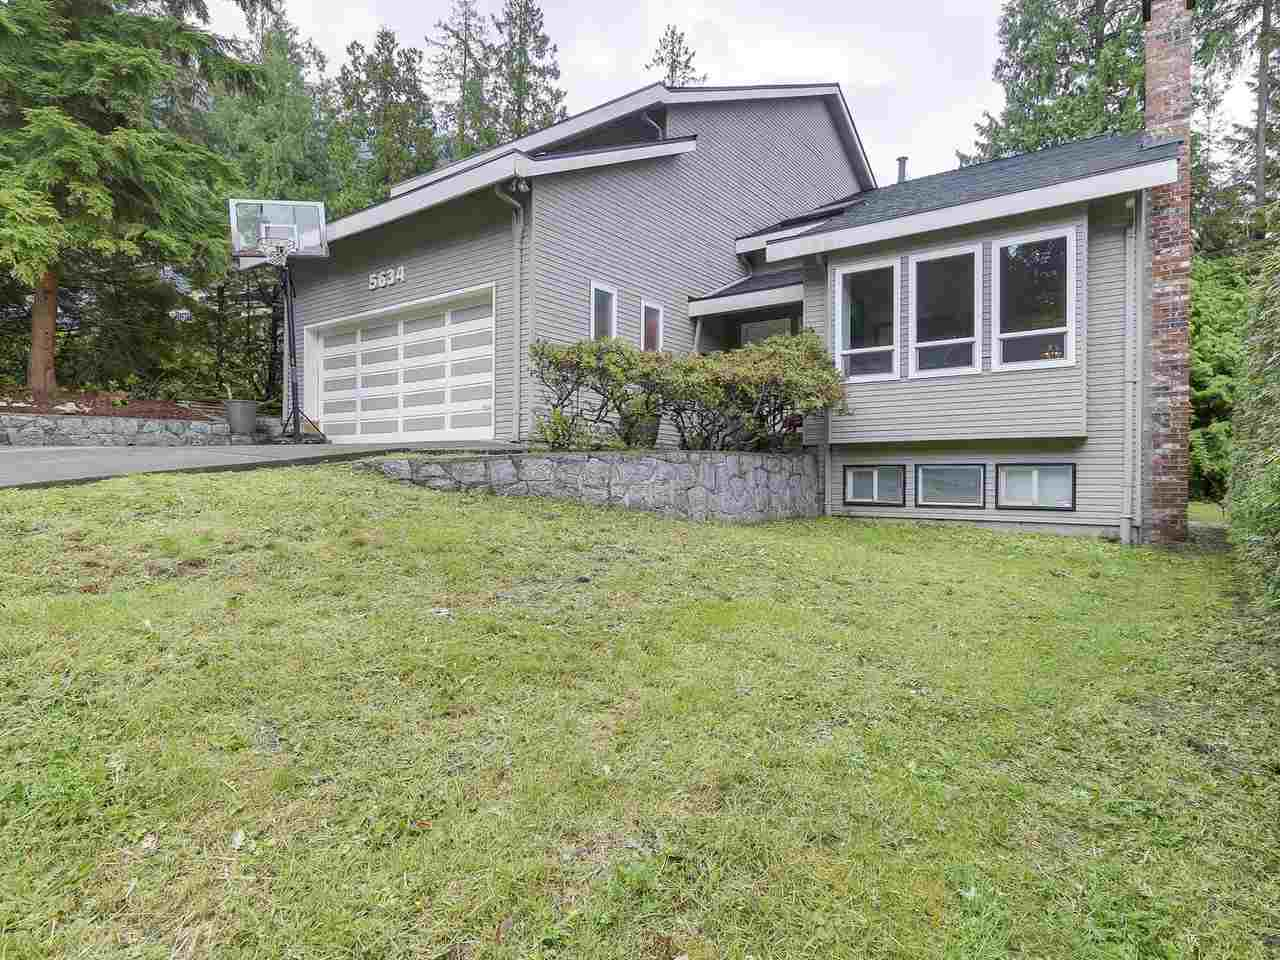 Detached at 5634 HONEYSUCKLE PLACE, North Vancouver, British Columbia. Image 1